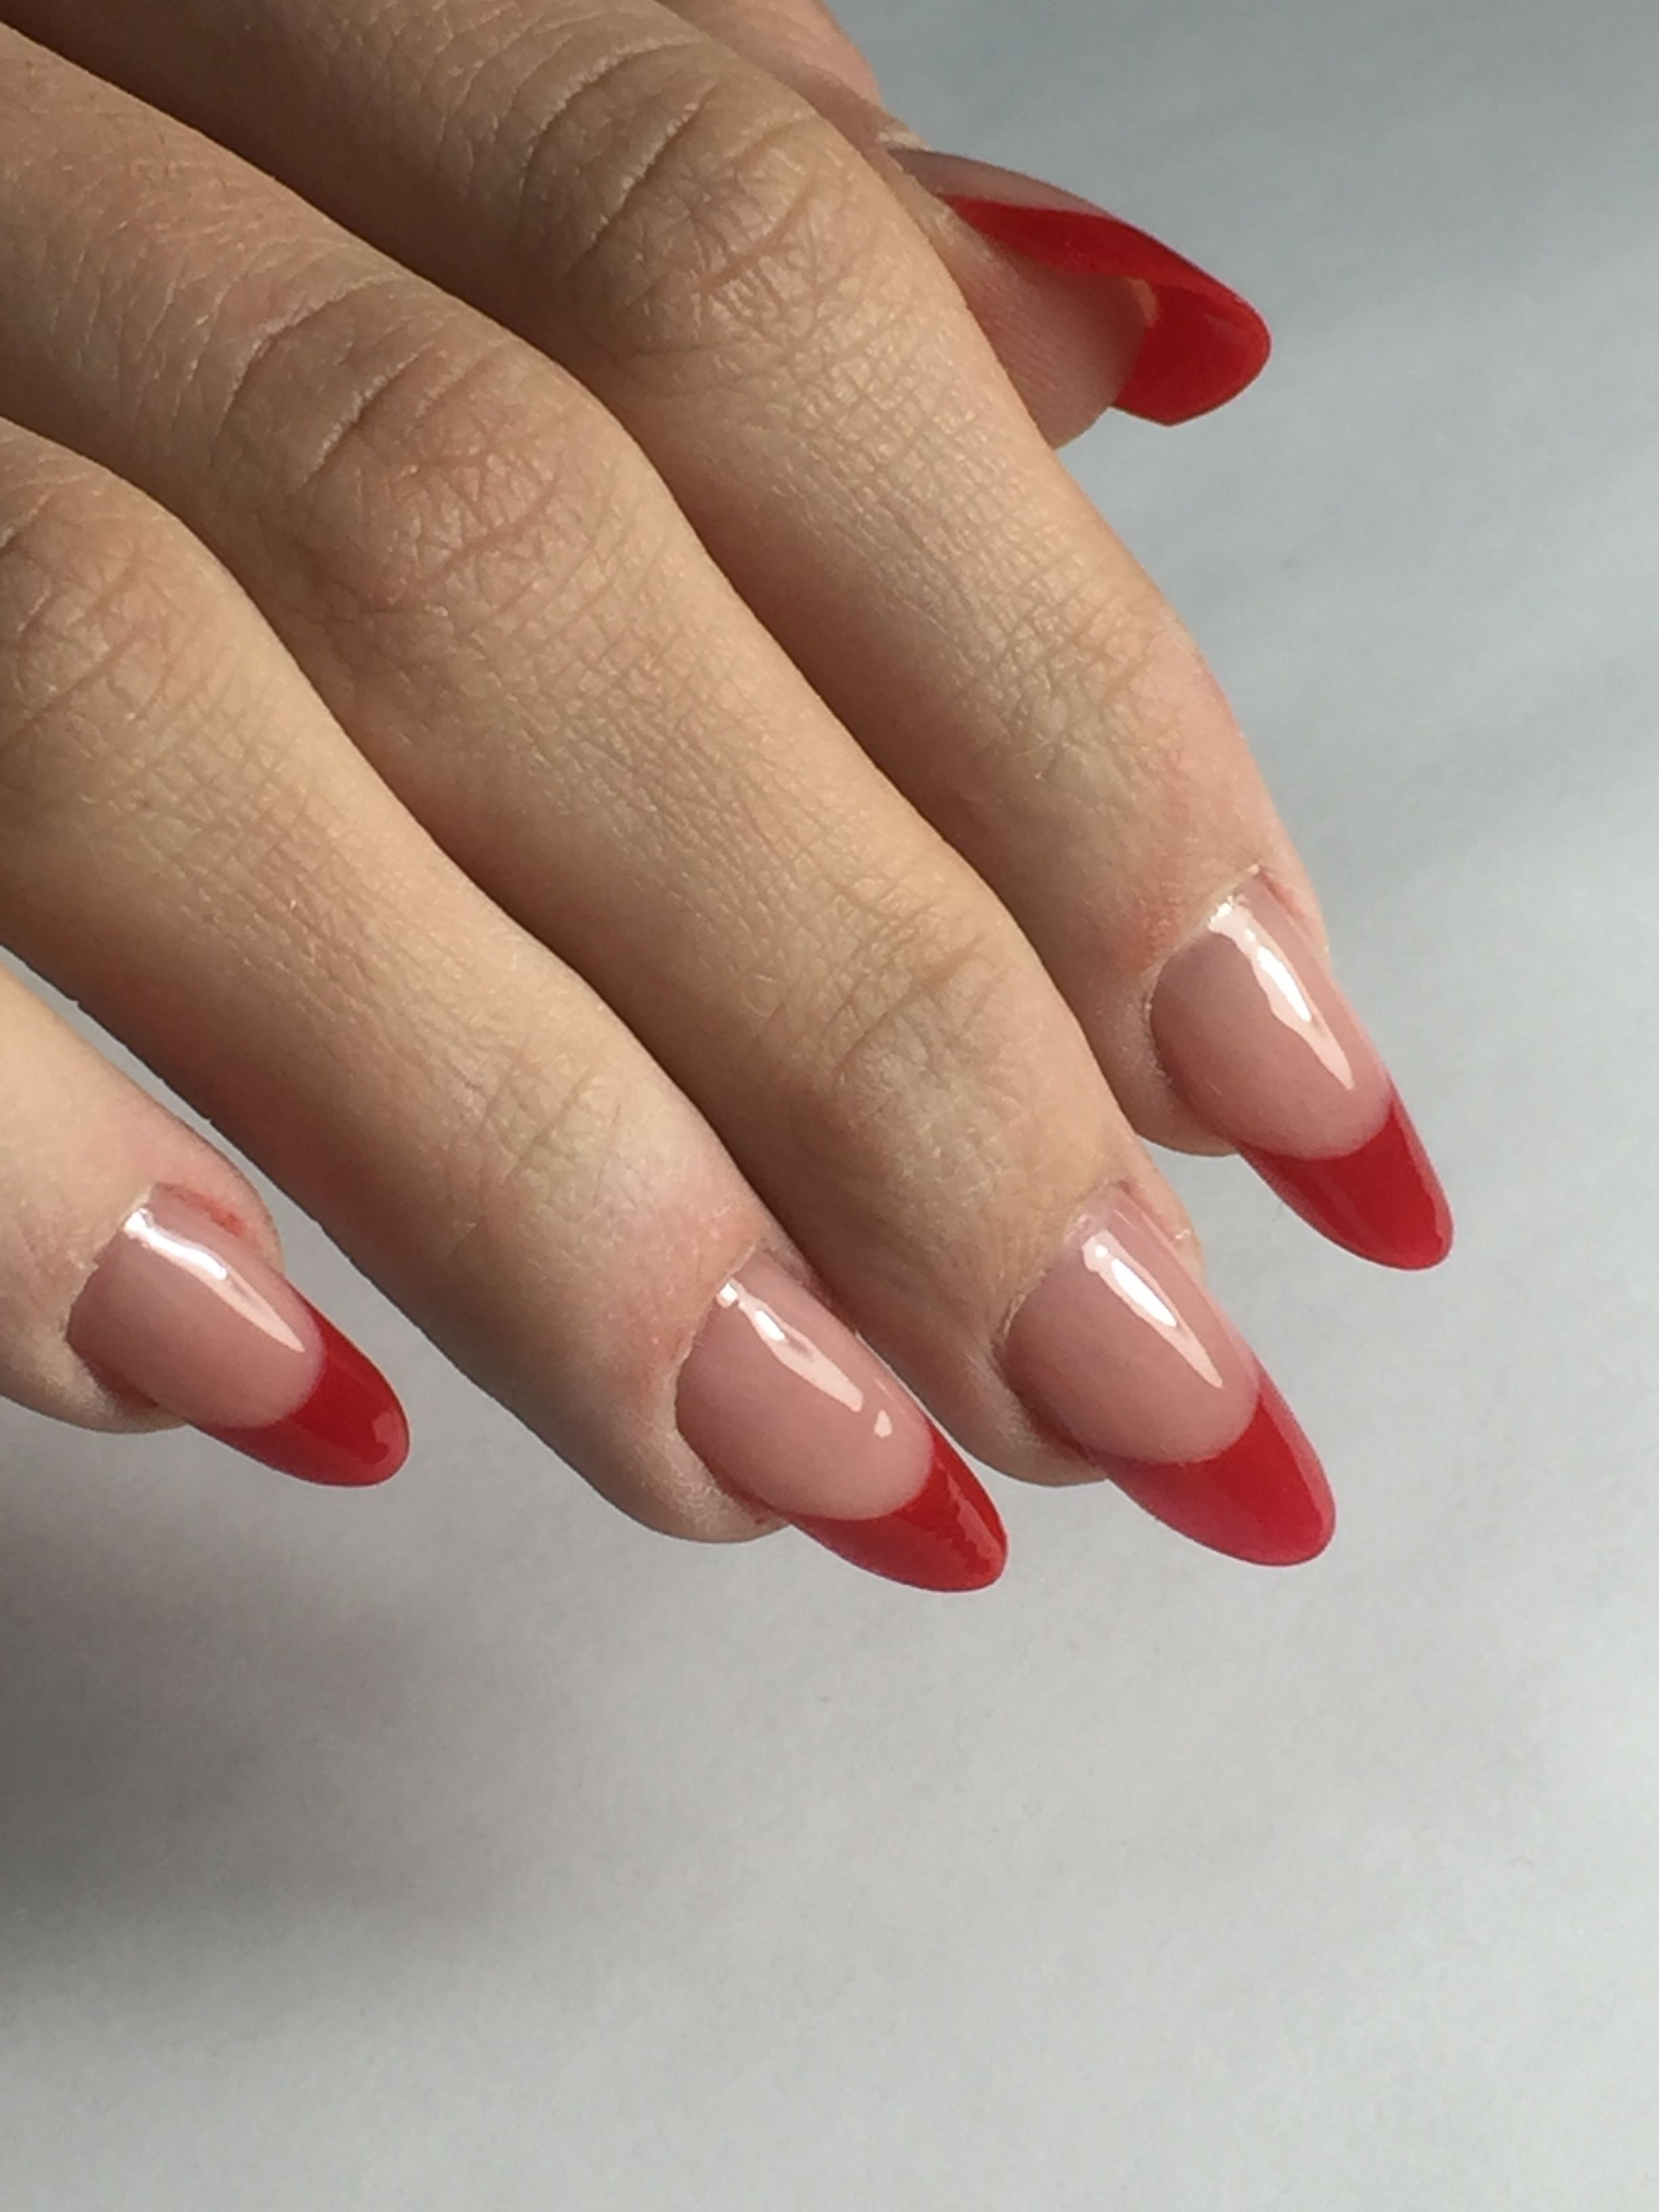 Acrylic nails redfrench frenchmanicure acrylicnails